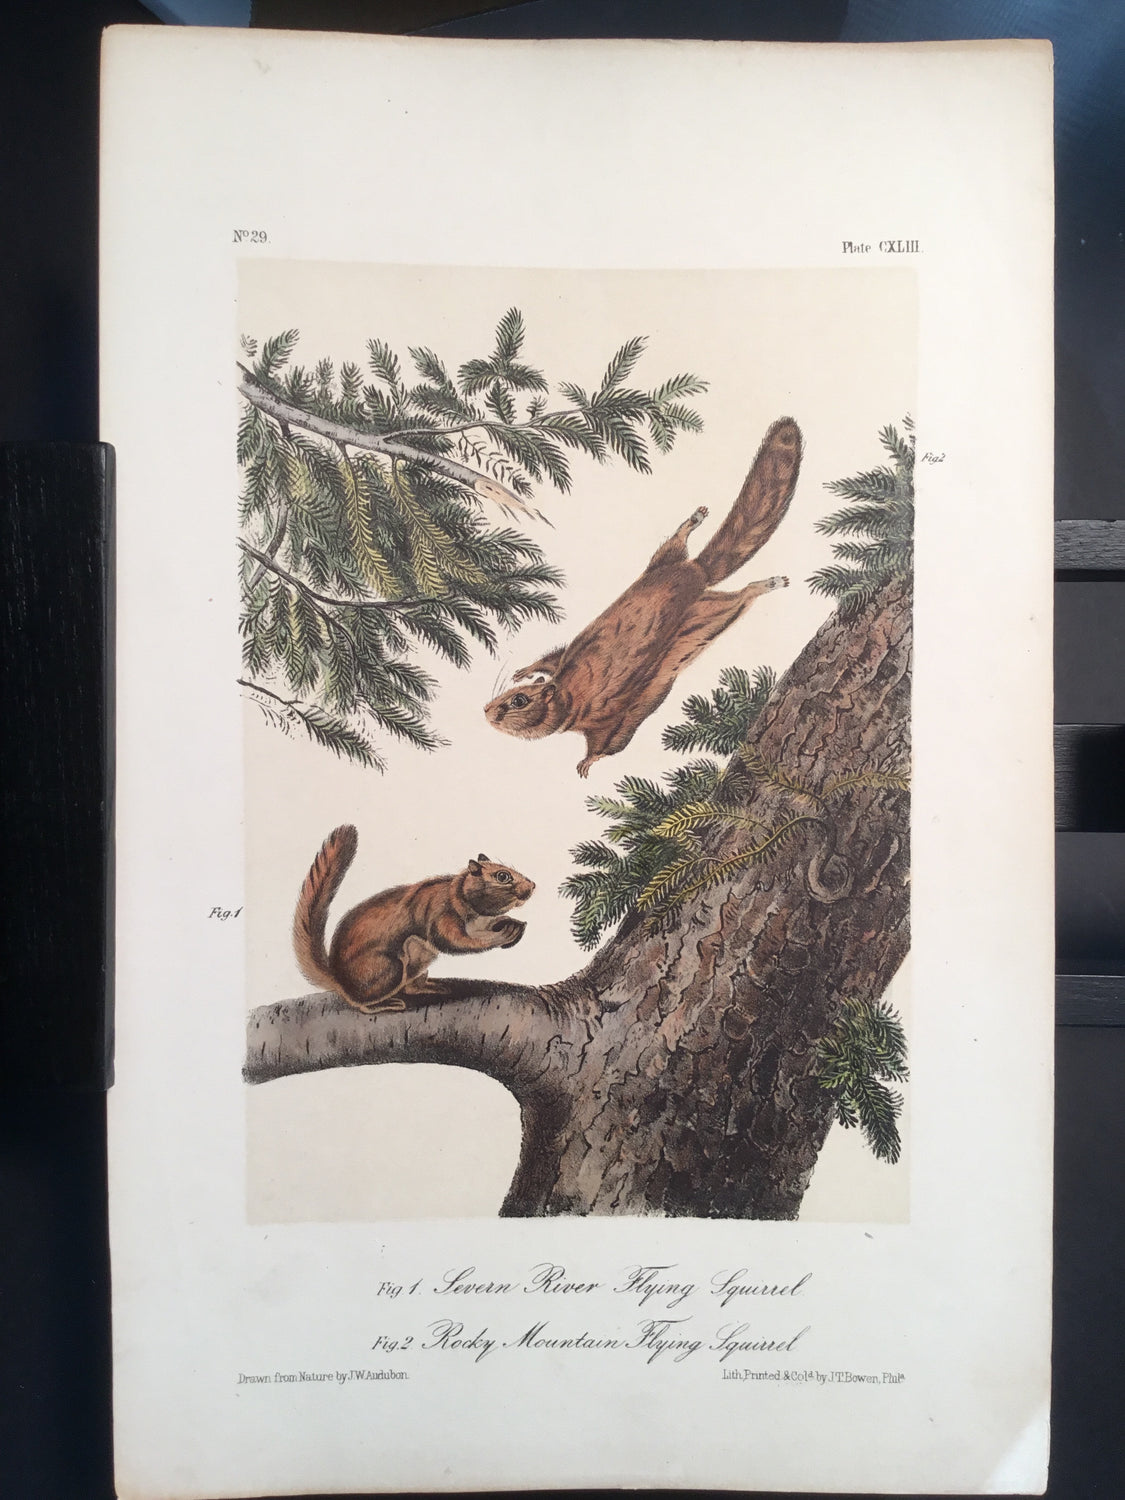 Lord-Hopkins Collection - Flying Squirrel